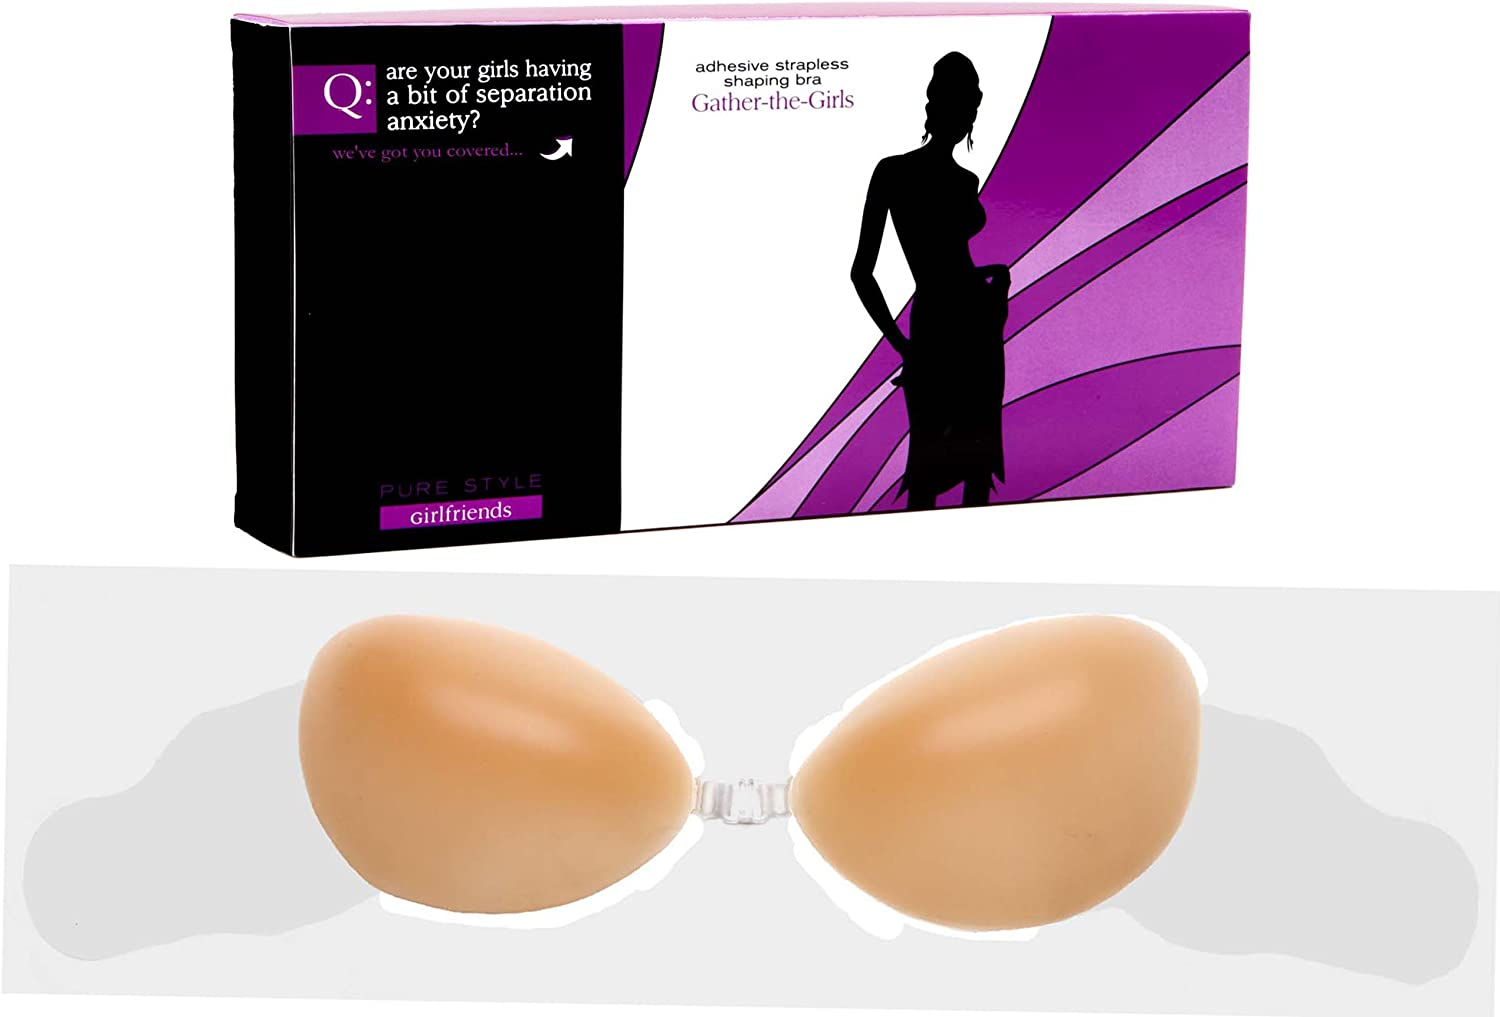 Pure Style Girlfriends  Nu GathertheGirls Adhesive Silicone Shaping Bra